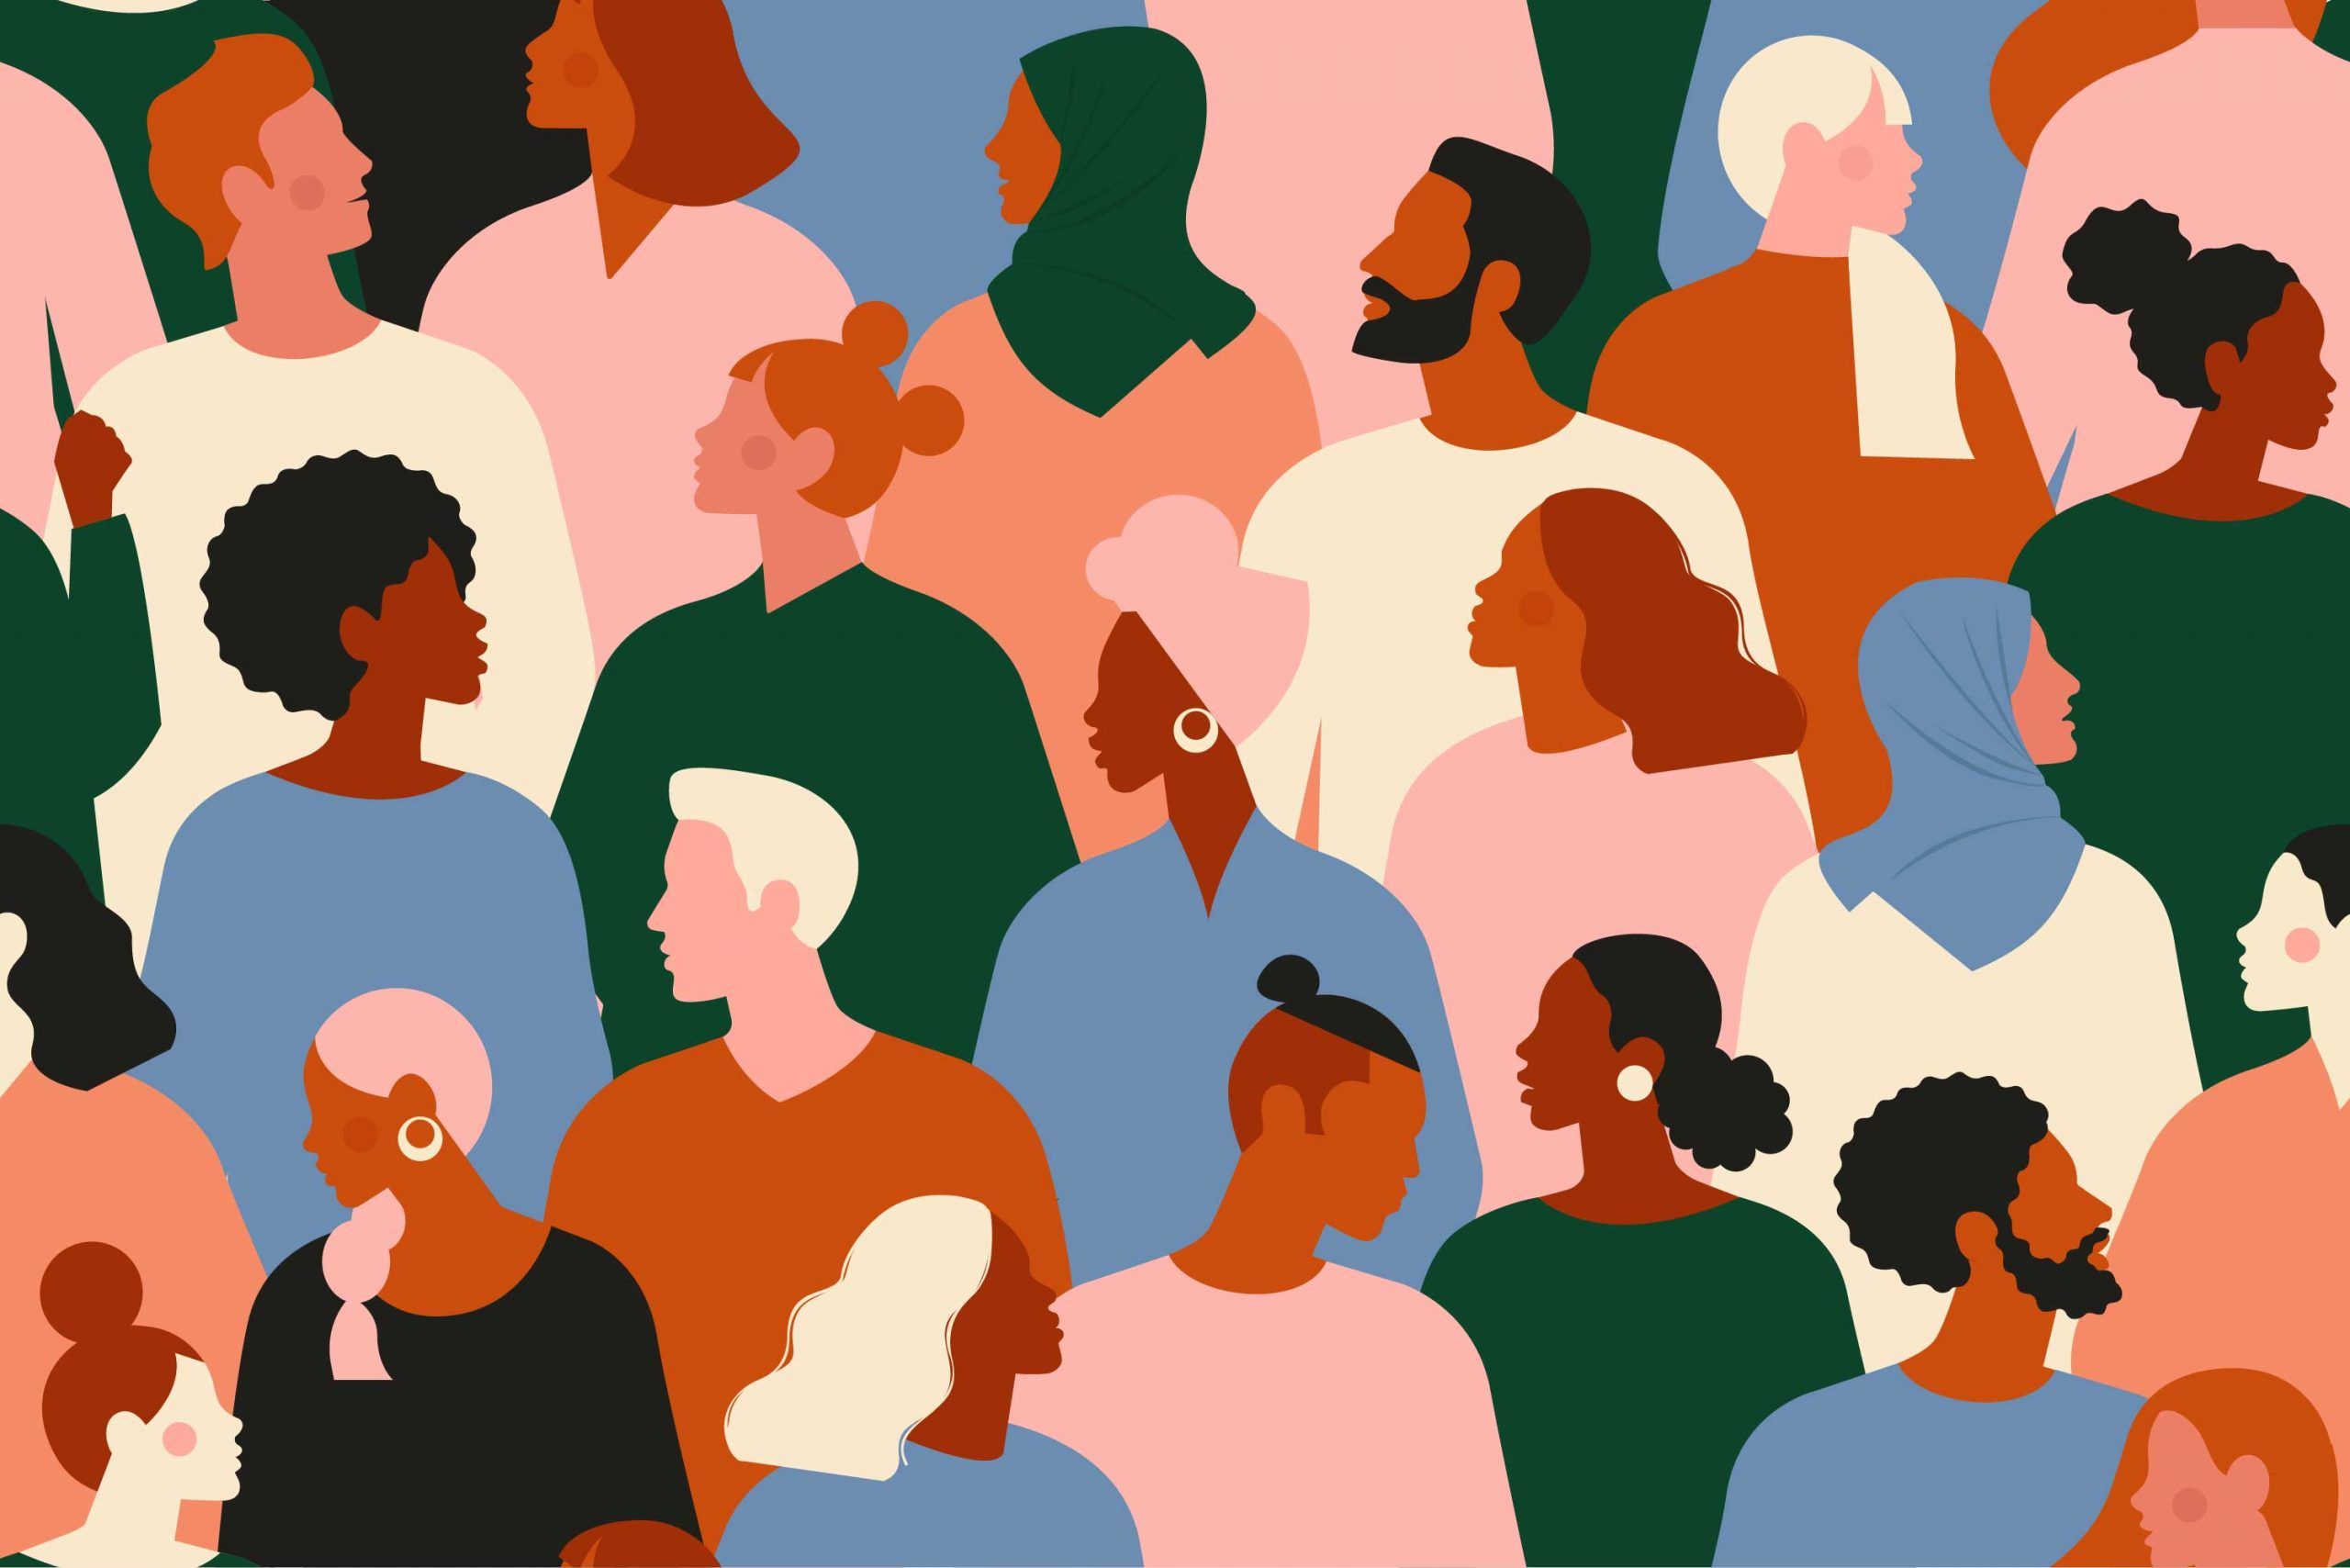 graphic of diverse crowd